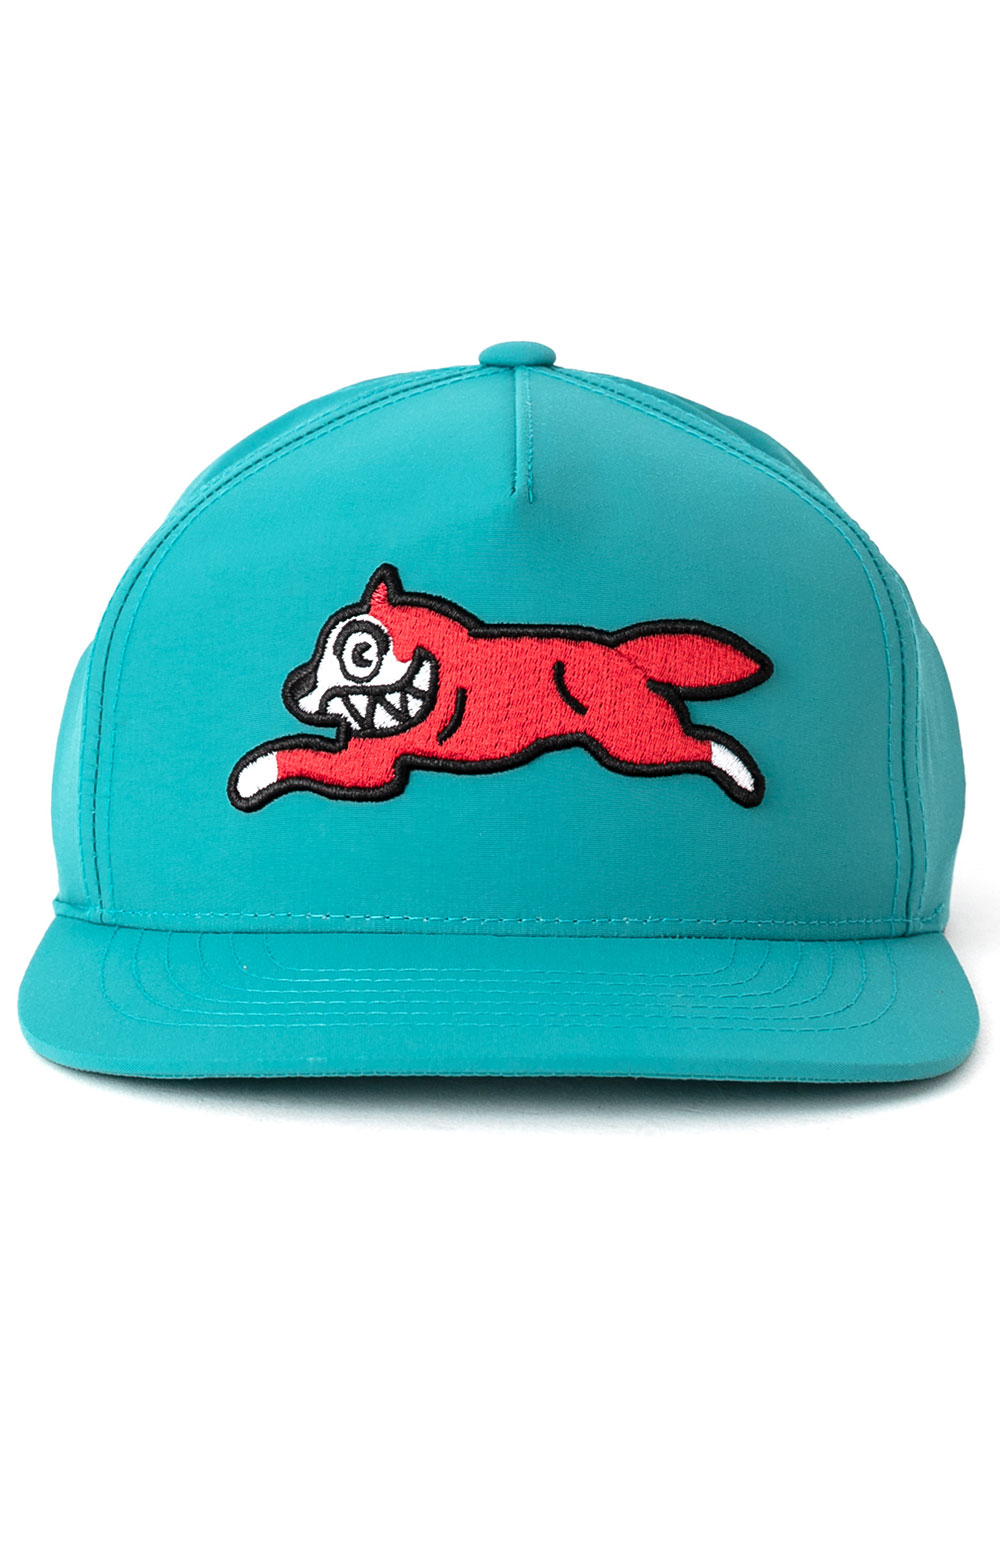 Ladd Snap-Back Hat - Teal 2